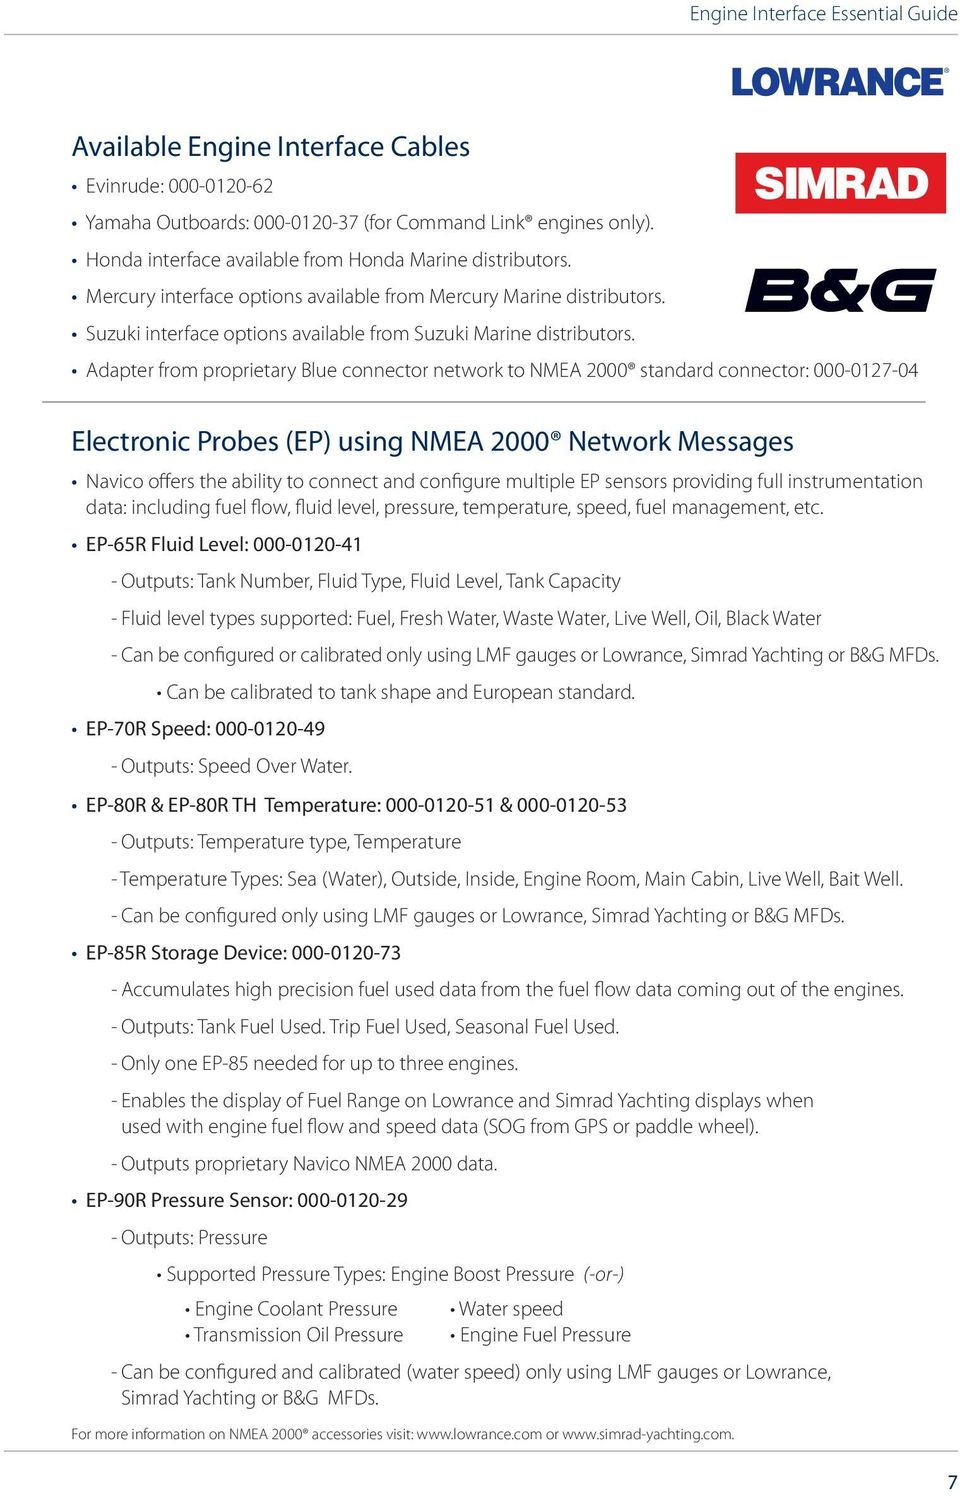 Nmea 2000 Engine Interface Pdf Wiring Diagram Evinrude 2015 E Tec 40 Adapter From Proprietary Blue Connector Network To Standard 000 0127